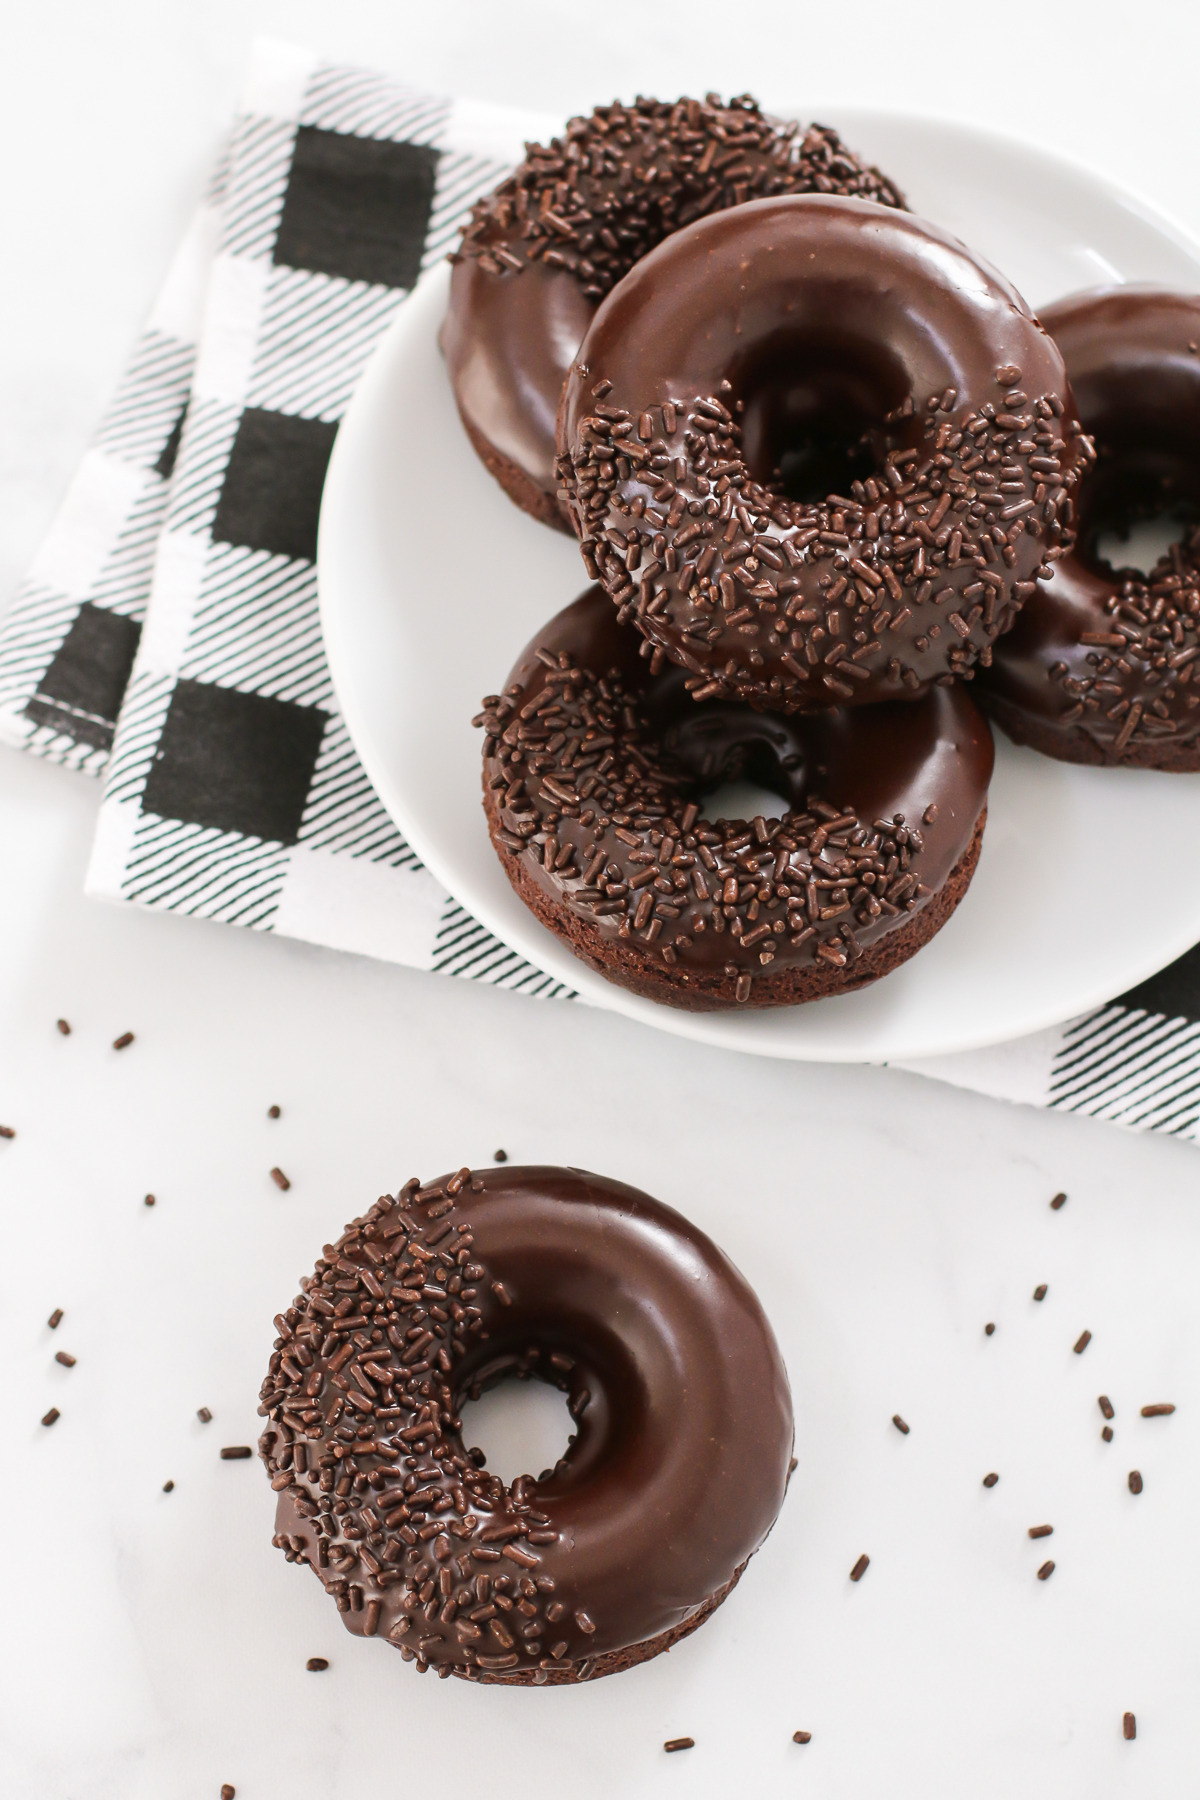 Gluten Free Vegan Baked Chocolate Donuts. Extra chocolatey cake donuts, dipped in a decadent chocolate glaze. Can't forget the chocolate sprinkles!